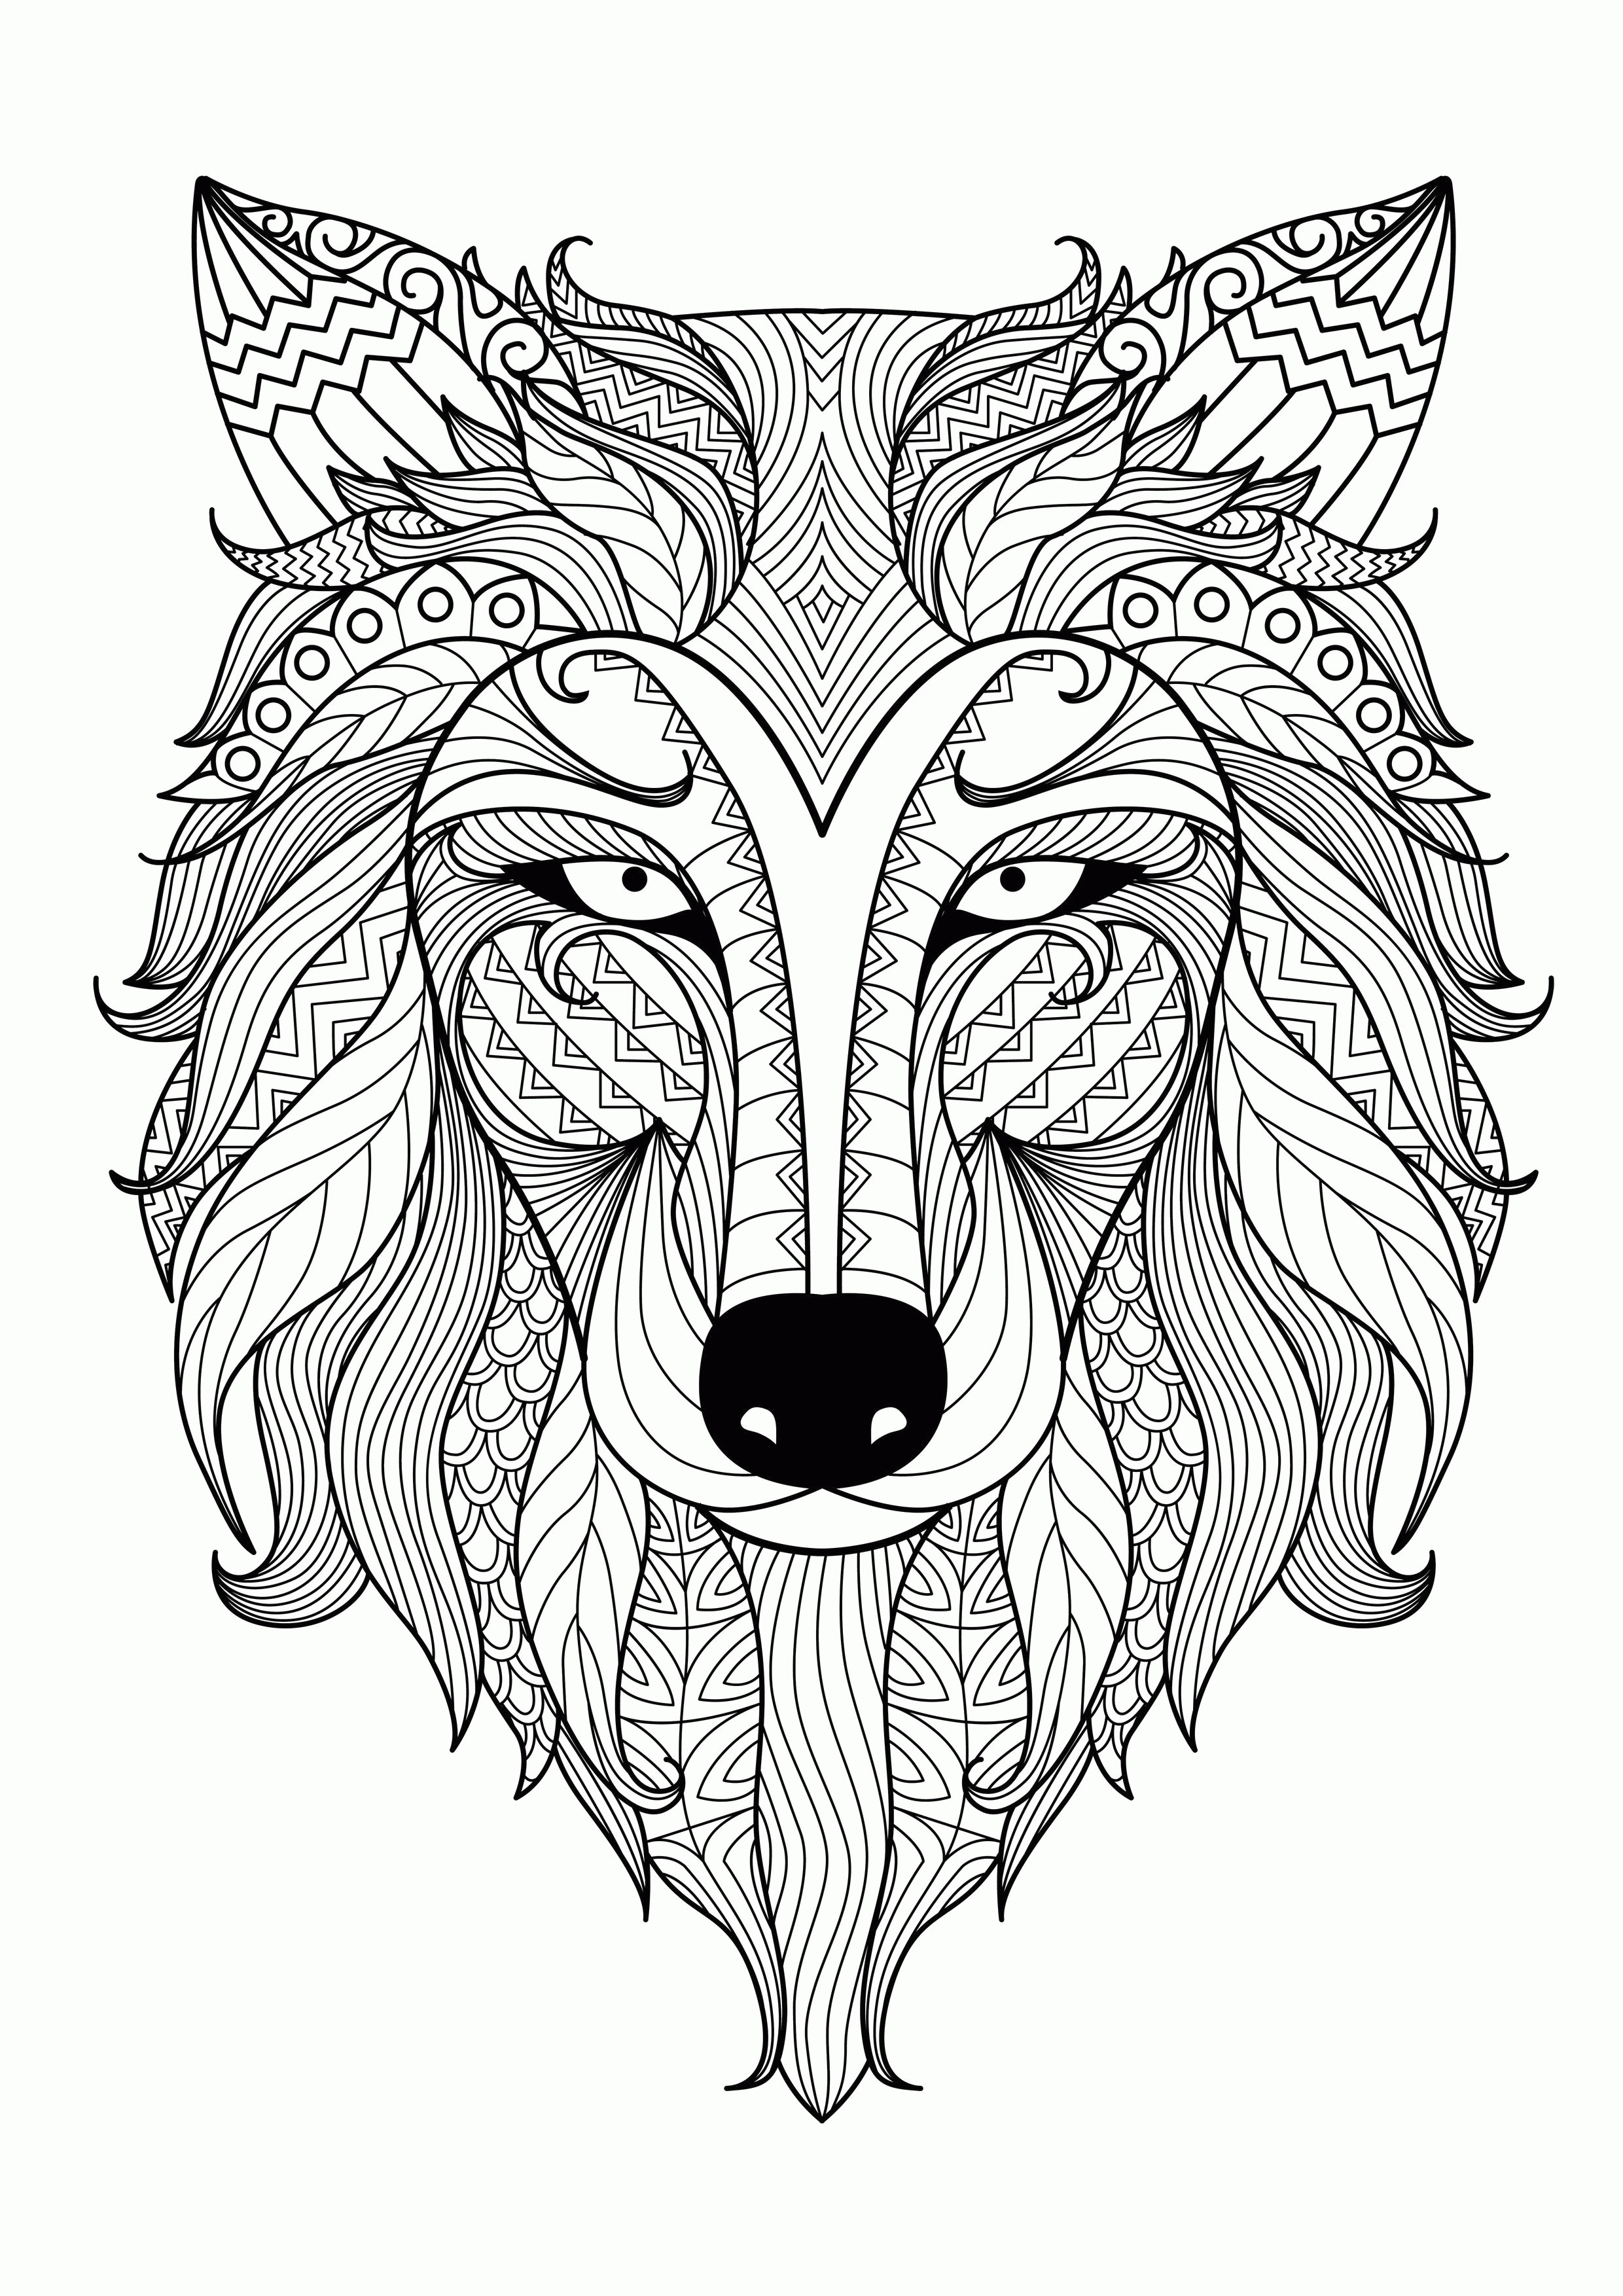 free online coloring pages for adults - abstract animal coloring pages